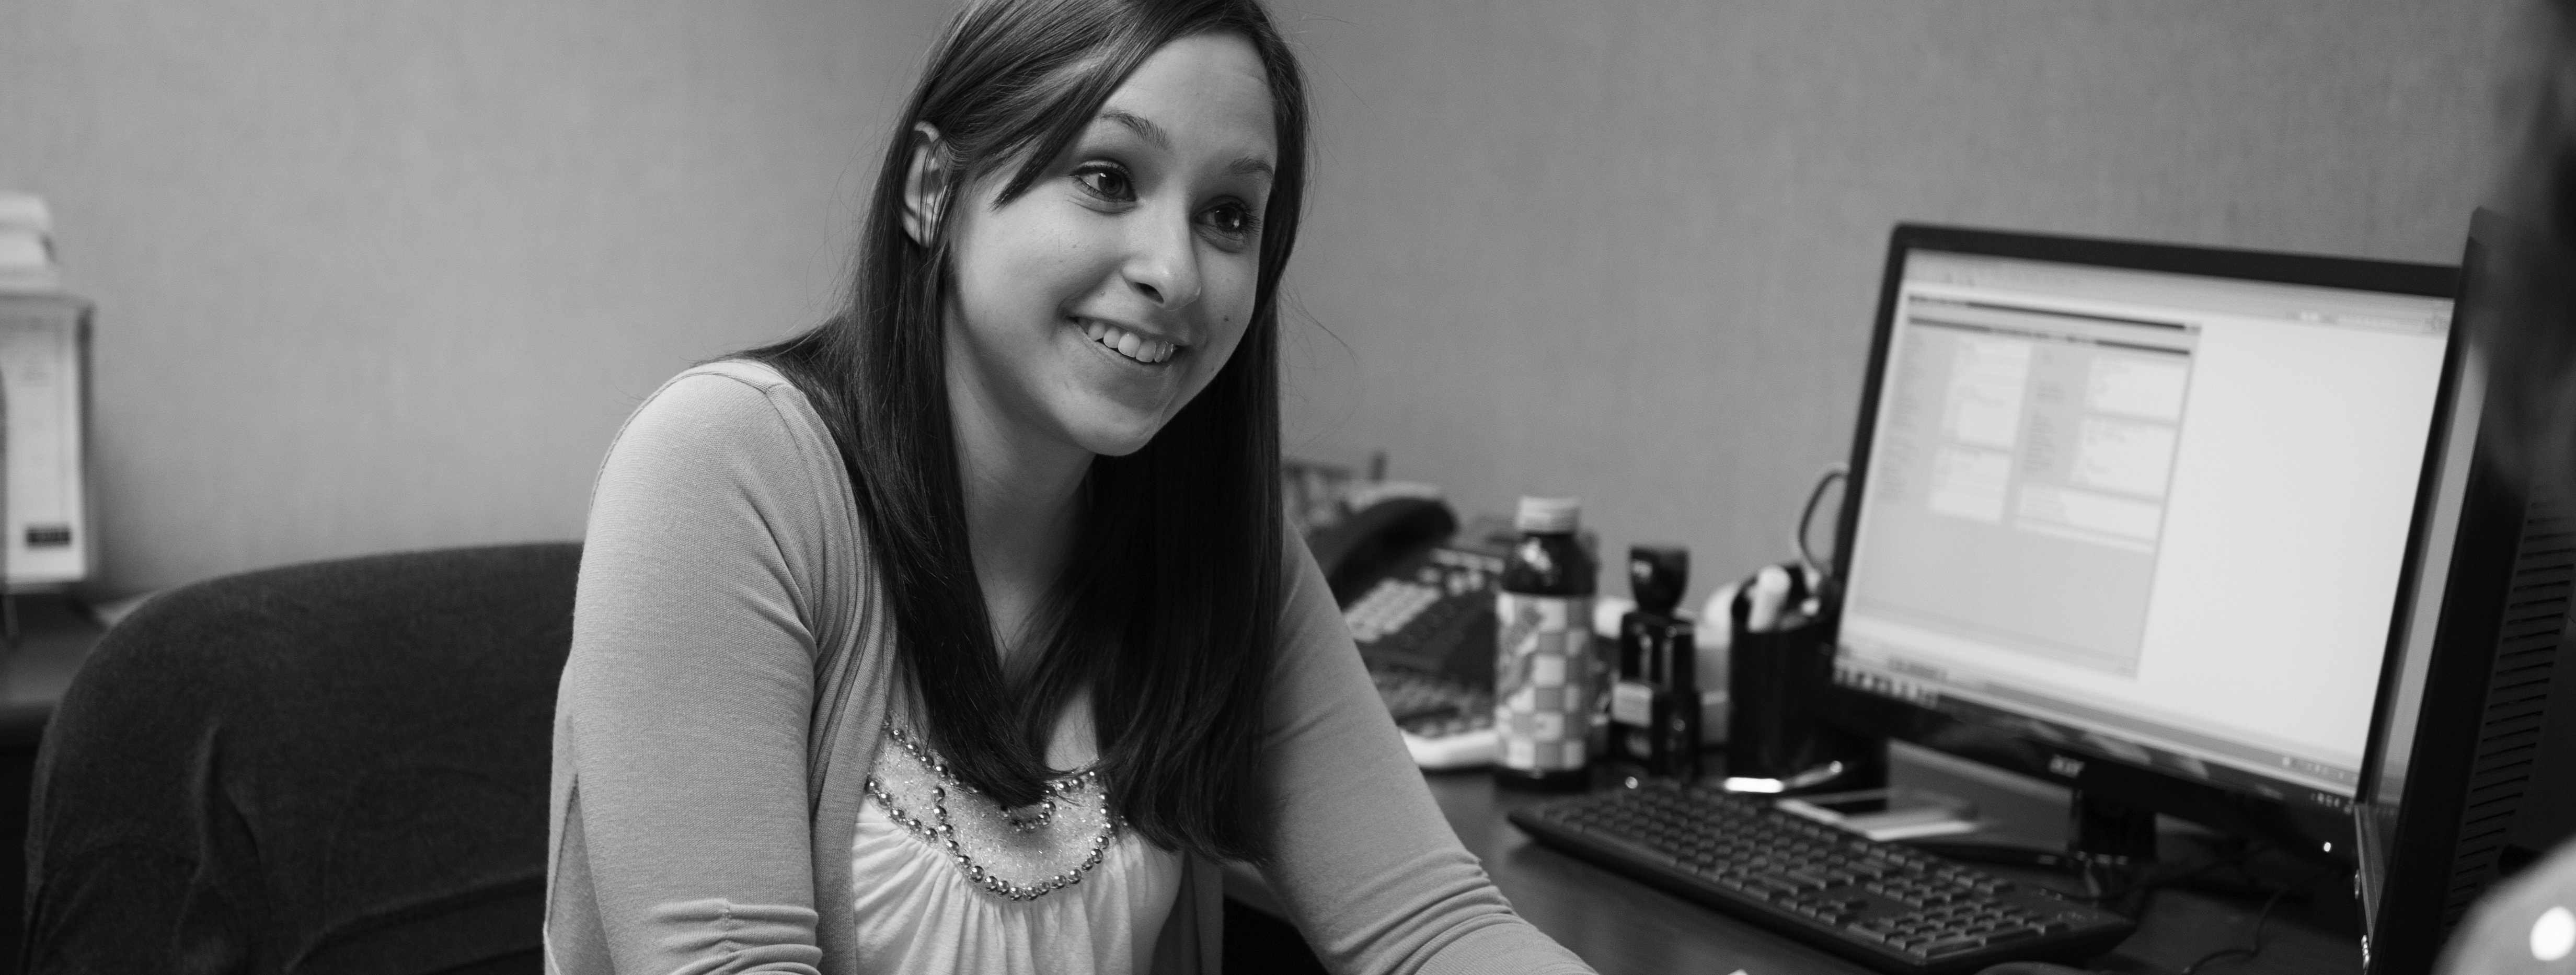 Alyssa Fikaris works in our billing & claims department